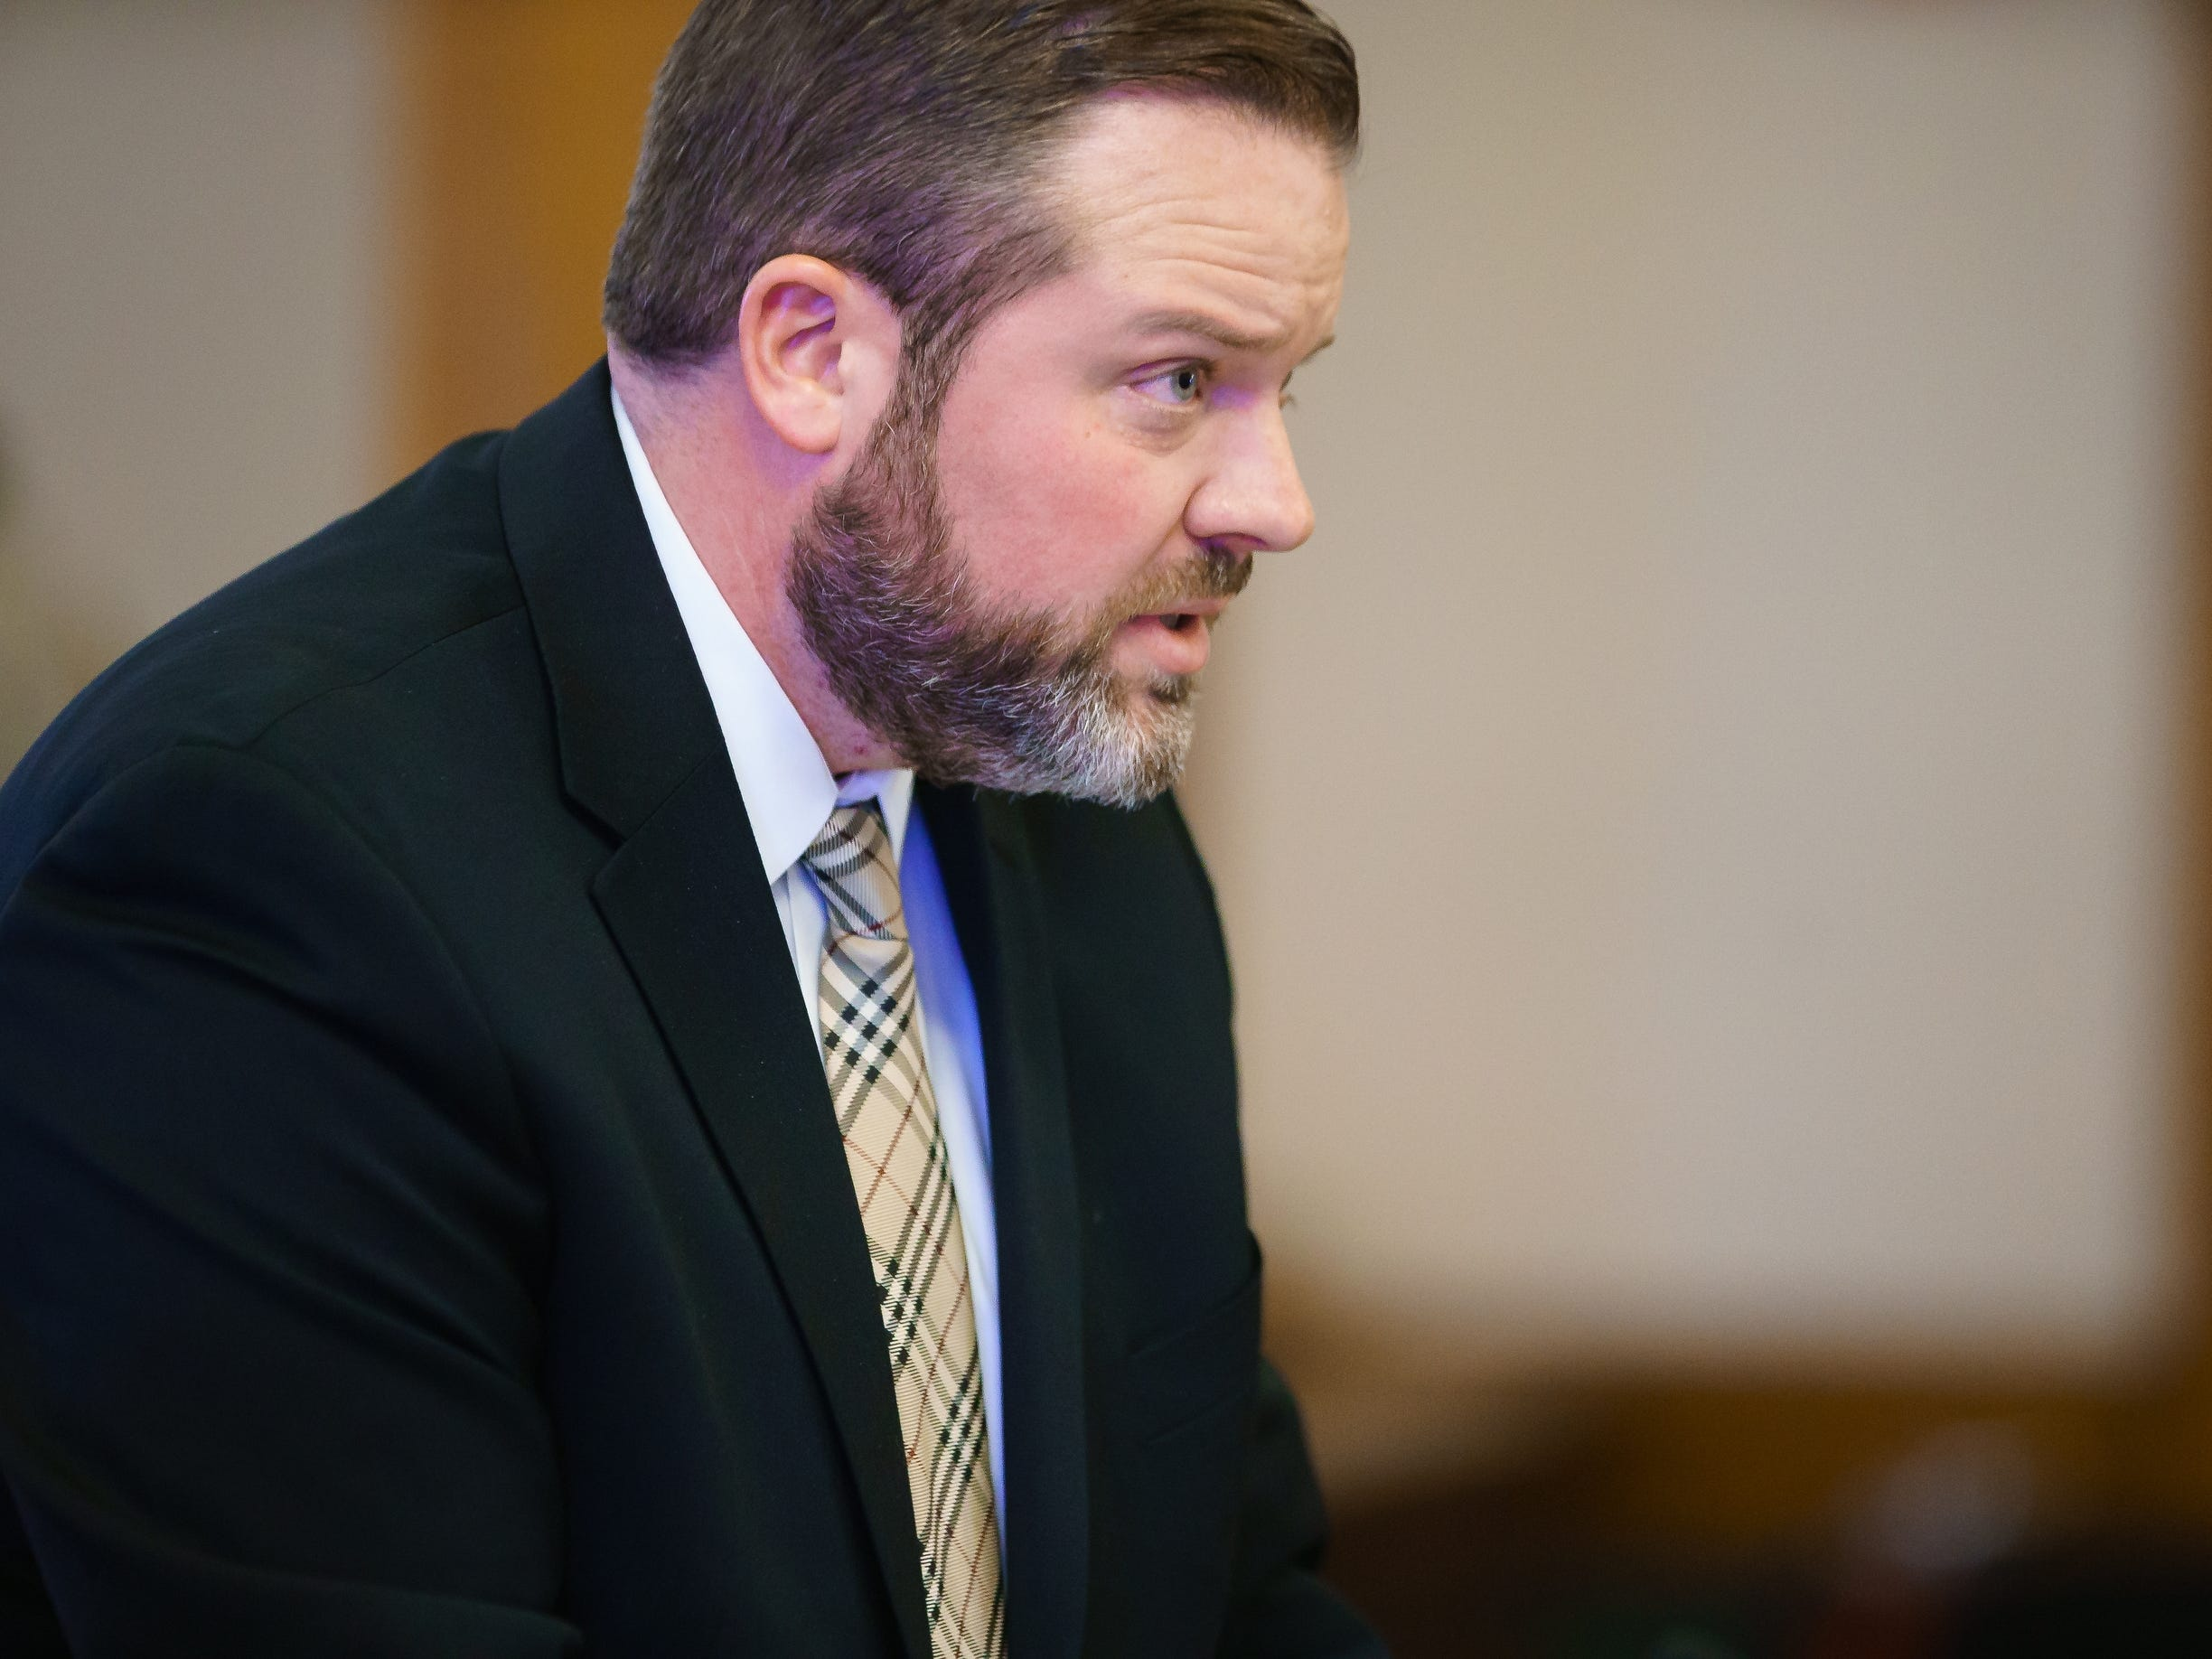 Misty Ray's defense attorney Sean Spellman speaks during a hearing at the Dallas County Courthouse on Wednesday, Jan. 9, 2019, in Adel. Ray plead guilty to three counts of kidnapping.